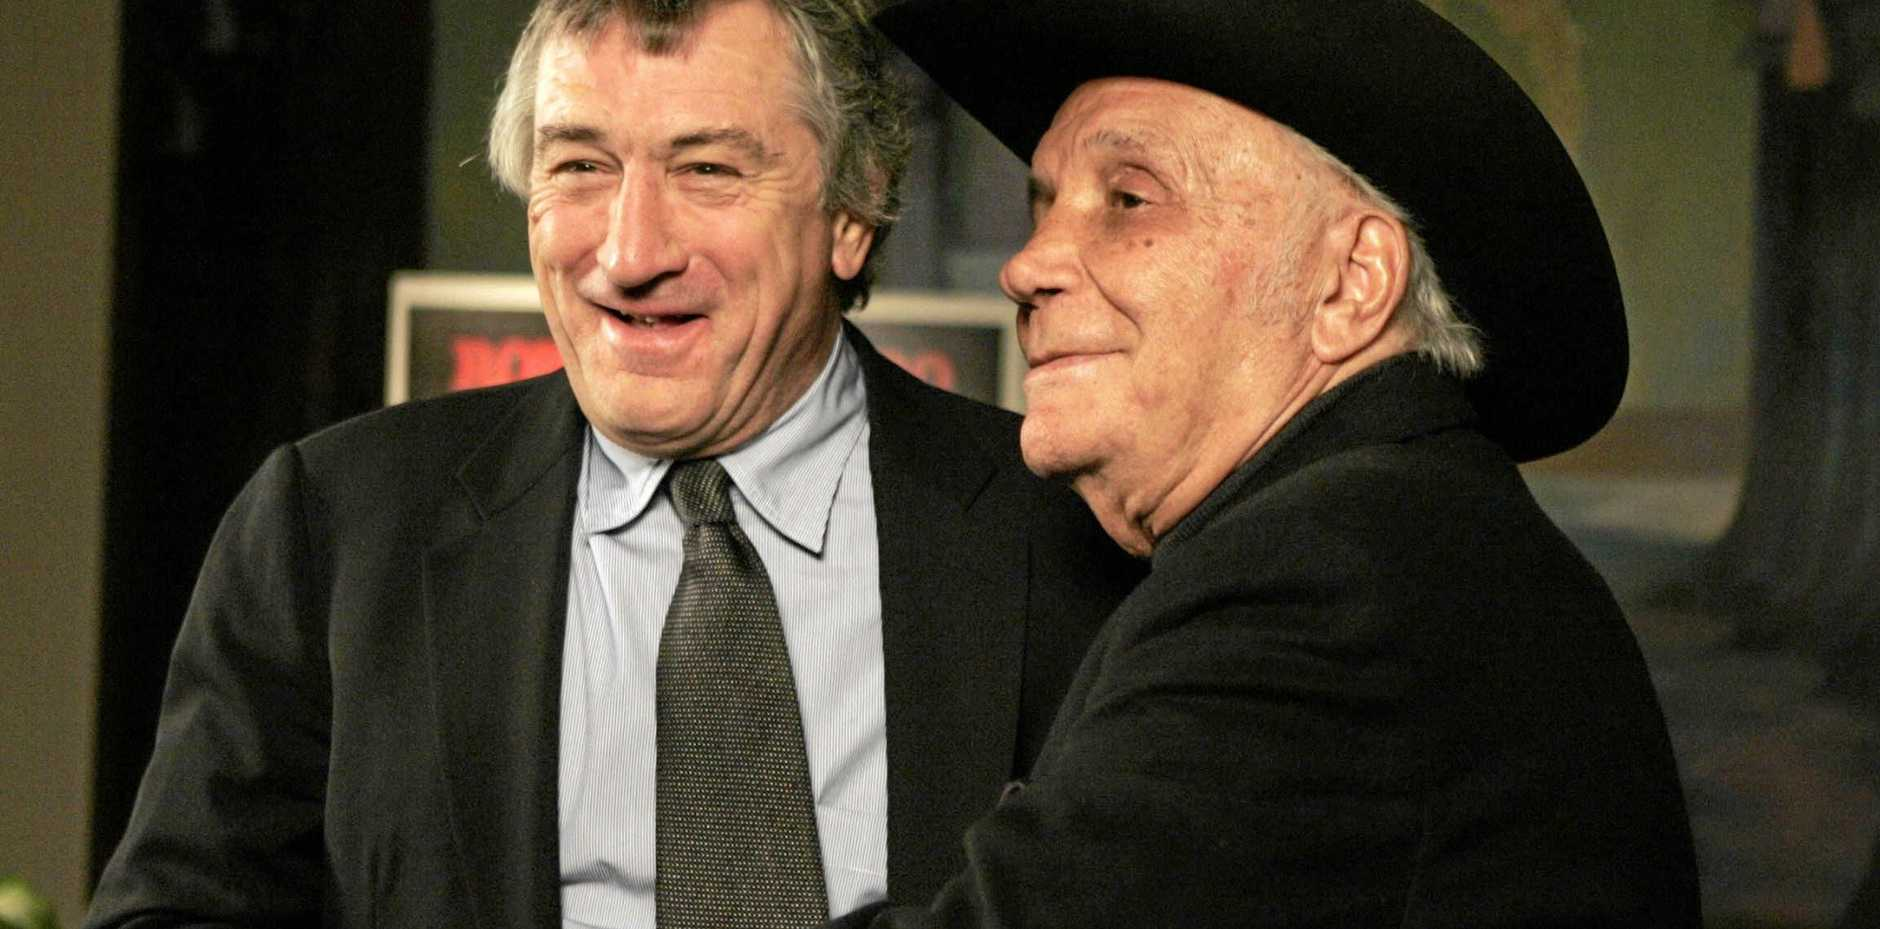 Robert DeNiro, left, and boxer Jake LaMotta together in 2005.